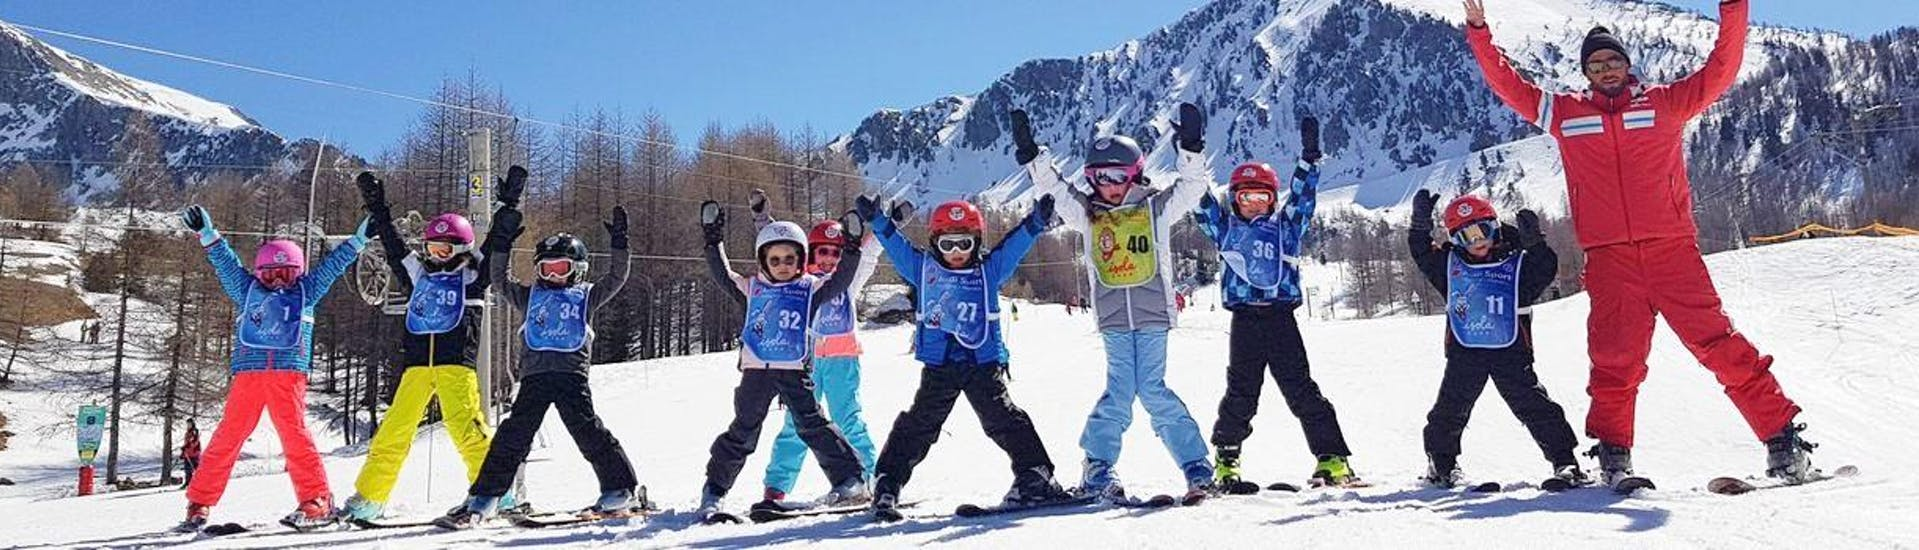 Kids are standing next to each other at the bottom of a slope, happy to start learning how to ski during their Kids Ski Lessons (7-12 y.) for All Levels with the ski school ESF Isola 2000.